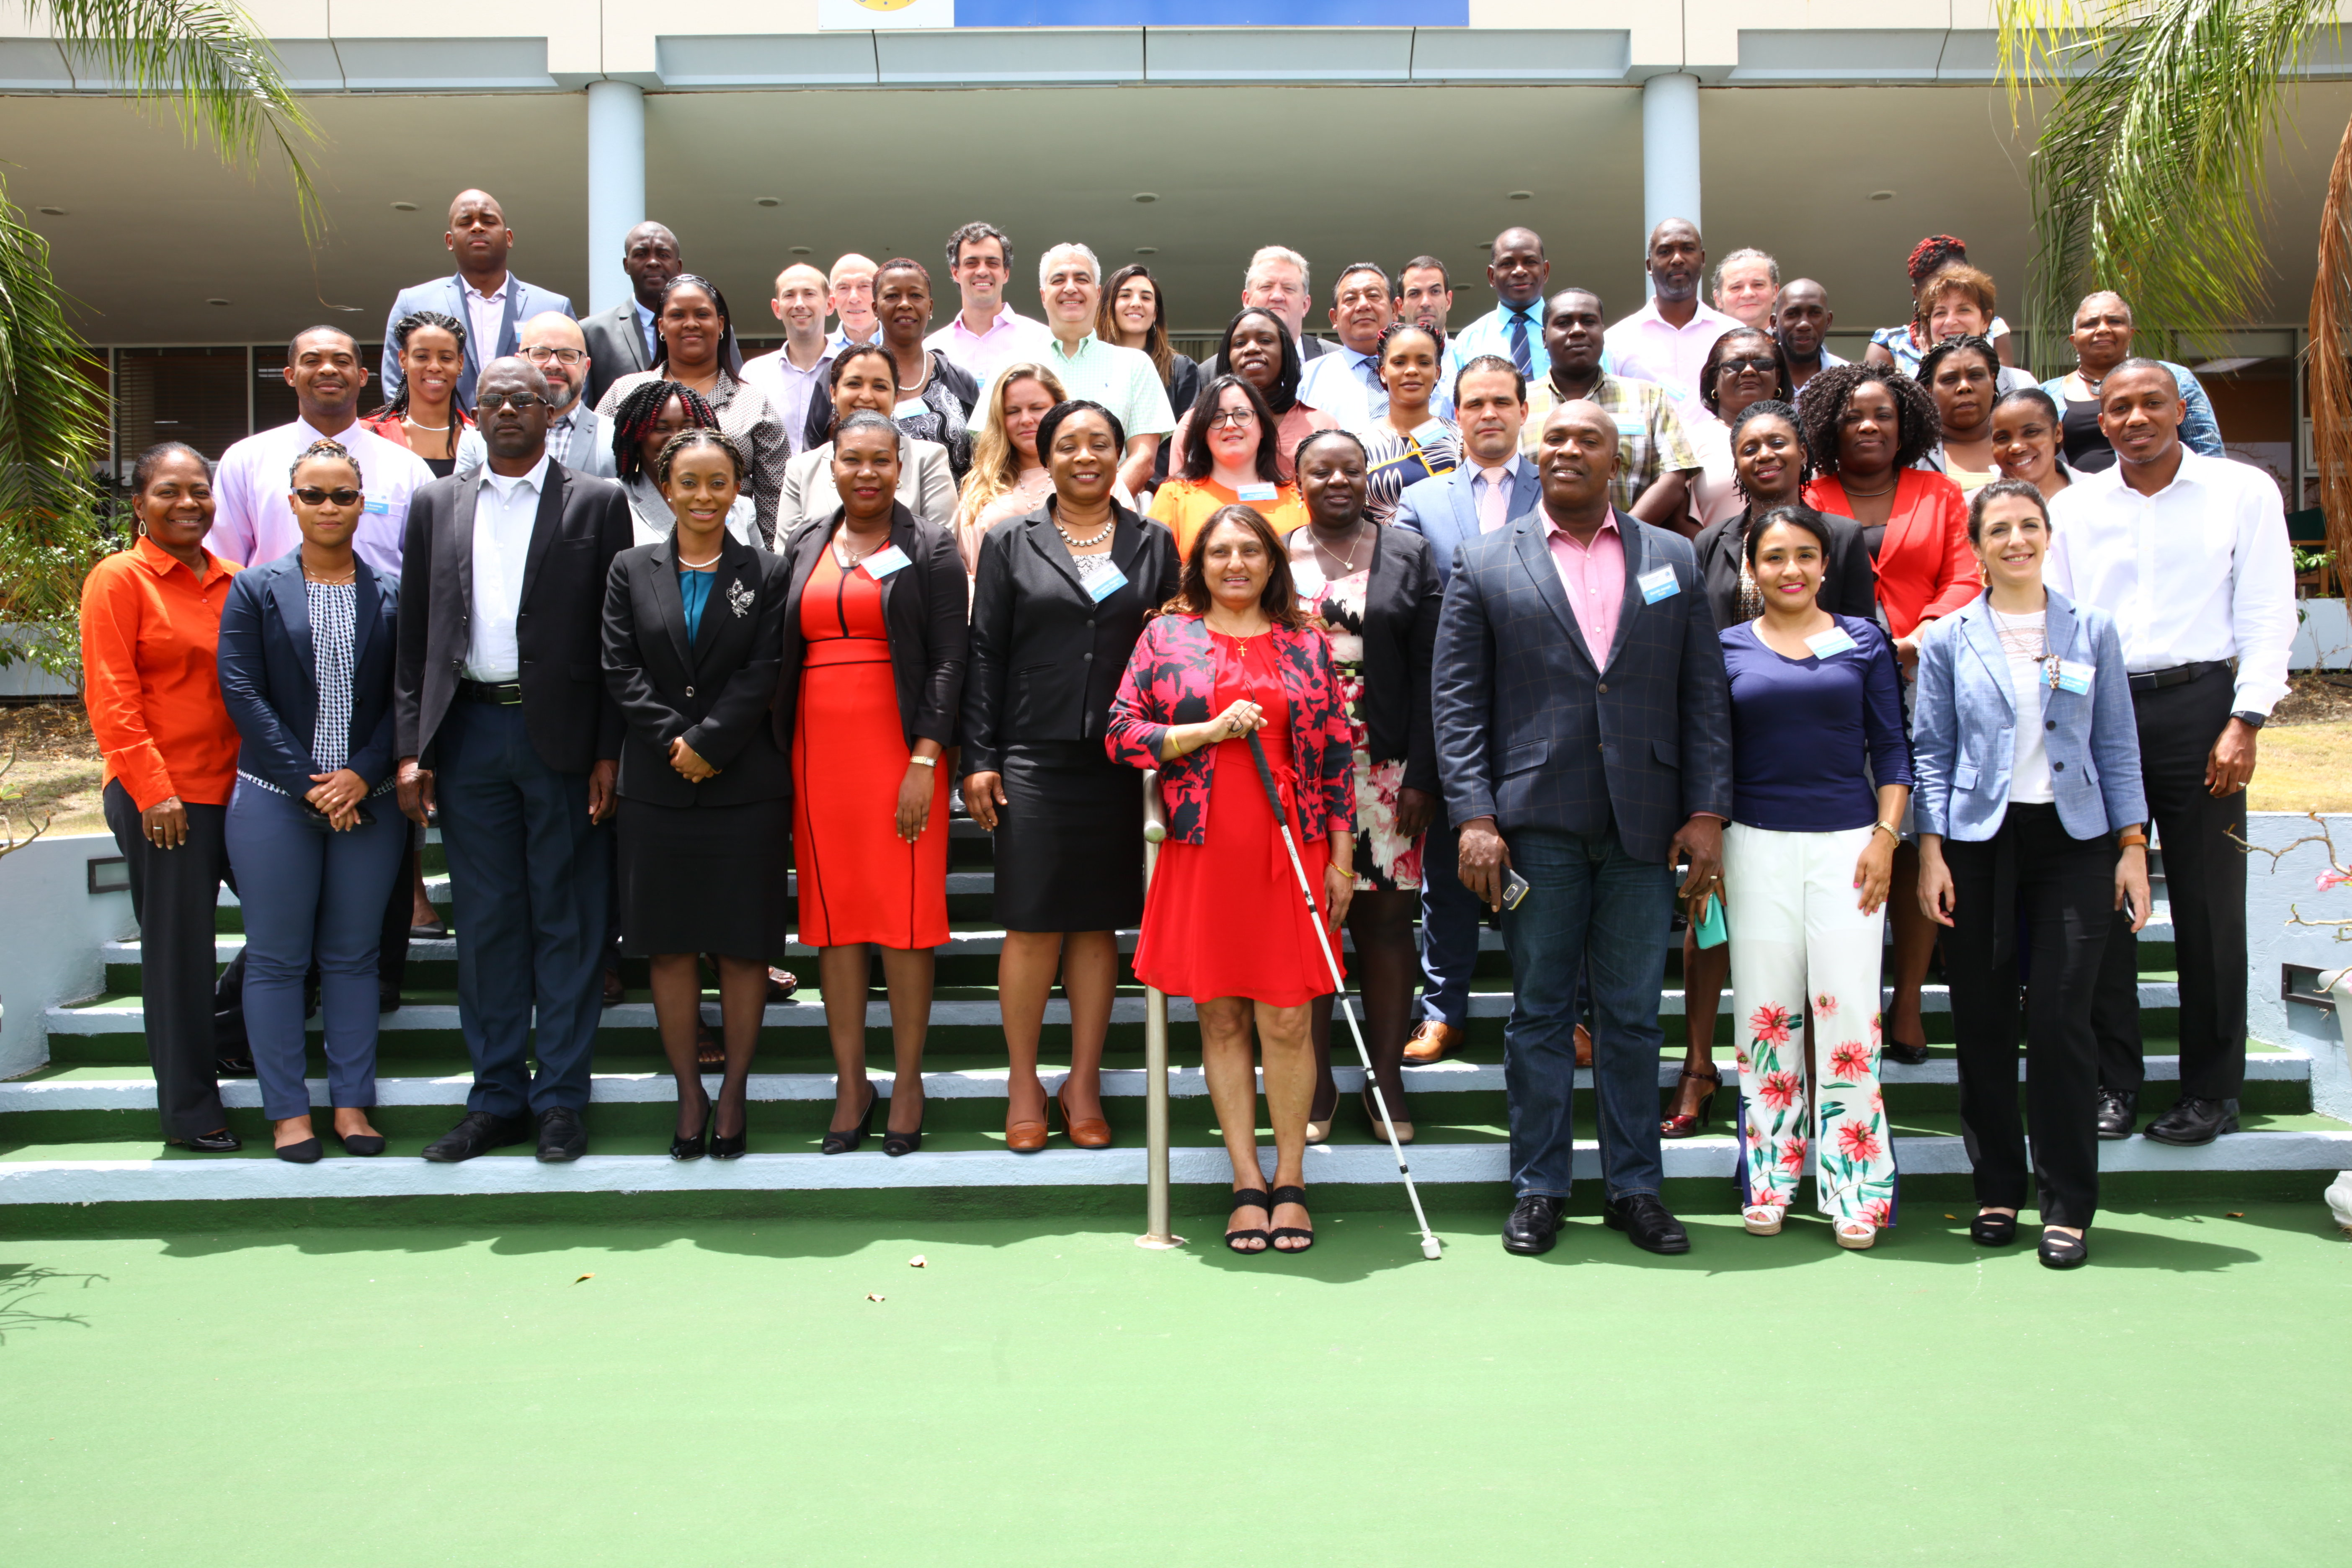 Participants of the Procurement in Emergency Situations Workshop gather for a group photo at the Caribbean Development Bank.